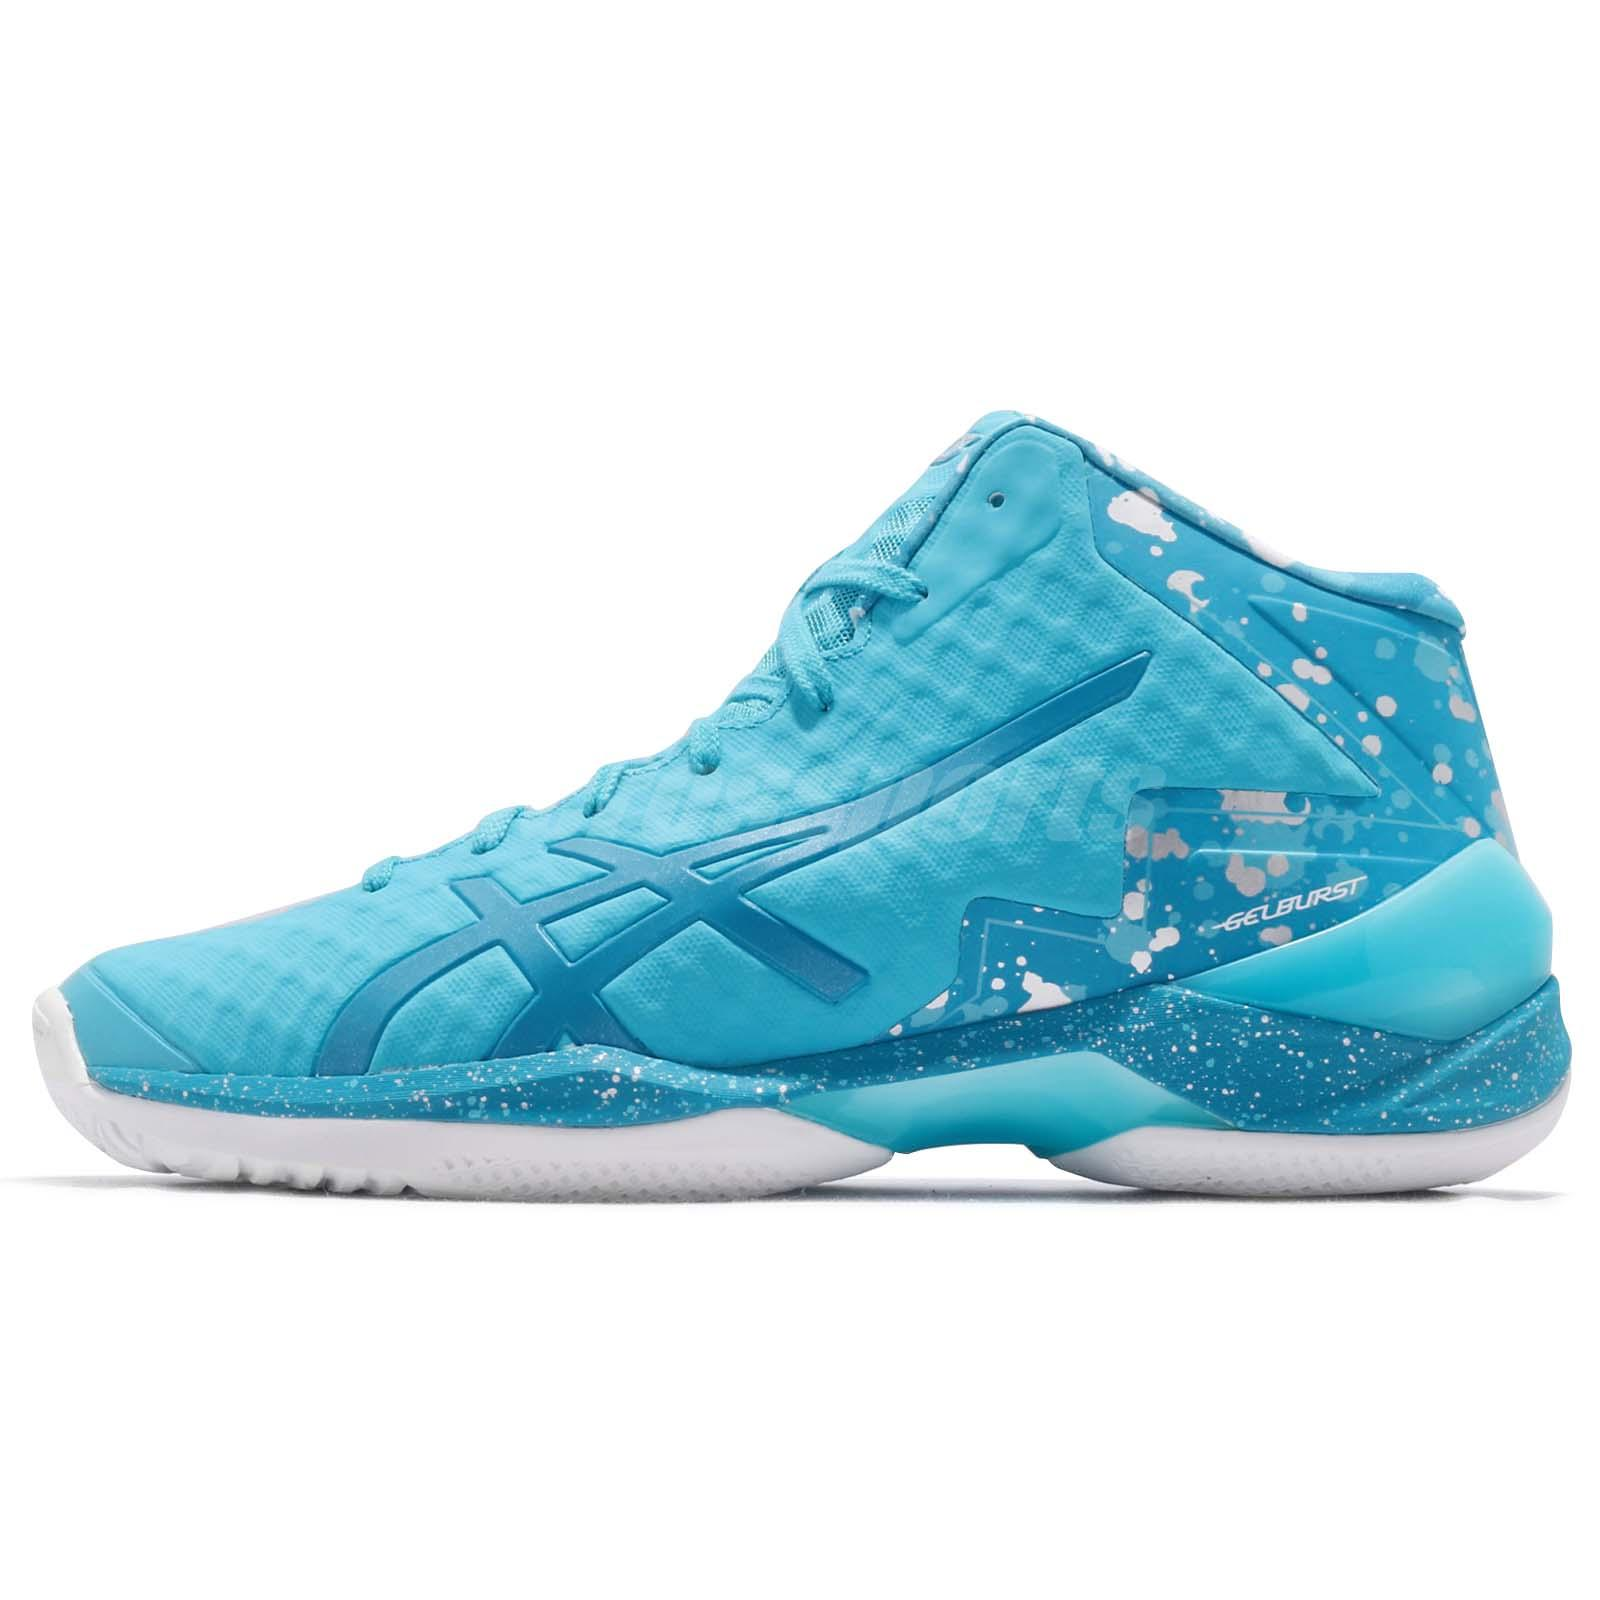 Asics Gel-burst 21 Ge Hi Aqua Island Blue Men Basketball Shoes Tbf30g-3941 Men's Shoes